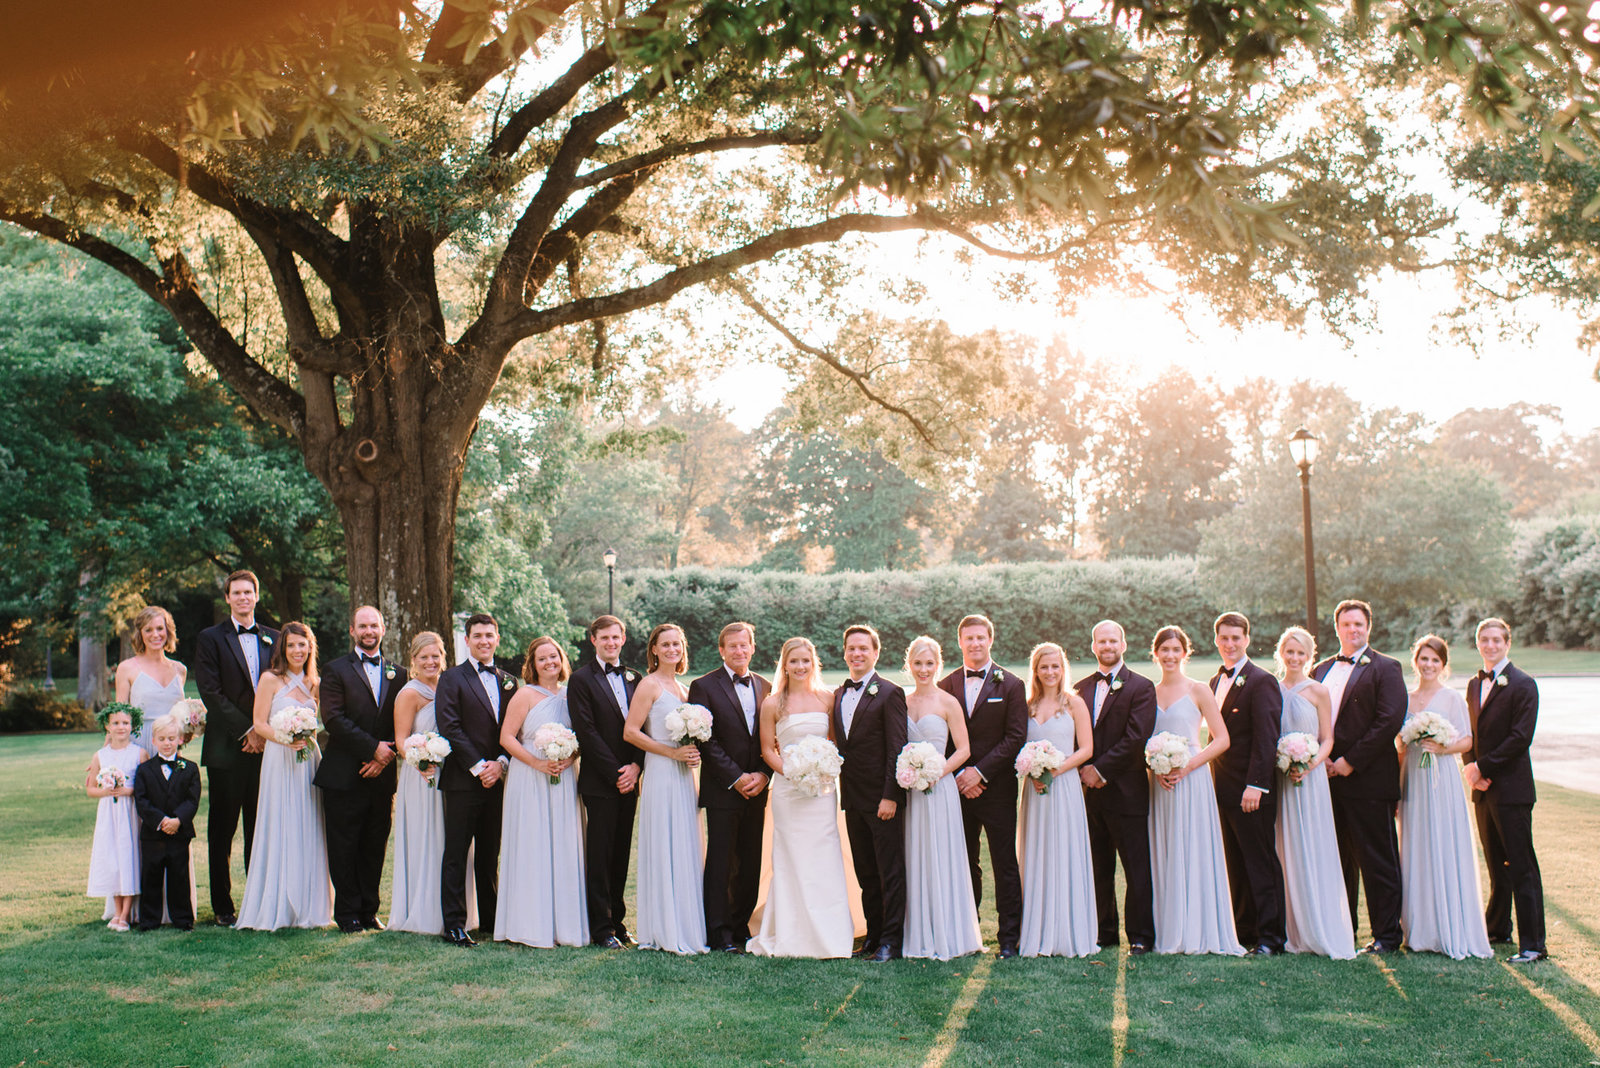 Wedding Photography in South Carolina by Myrtle Beach Wedding Photographer Pasha Belman-7